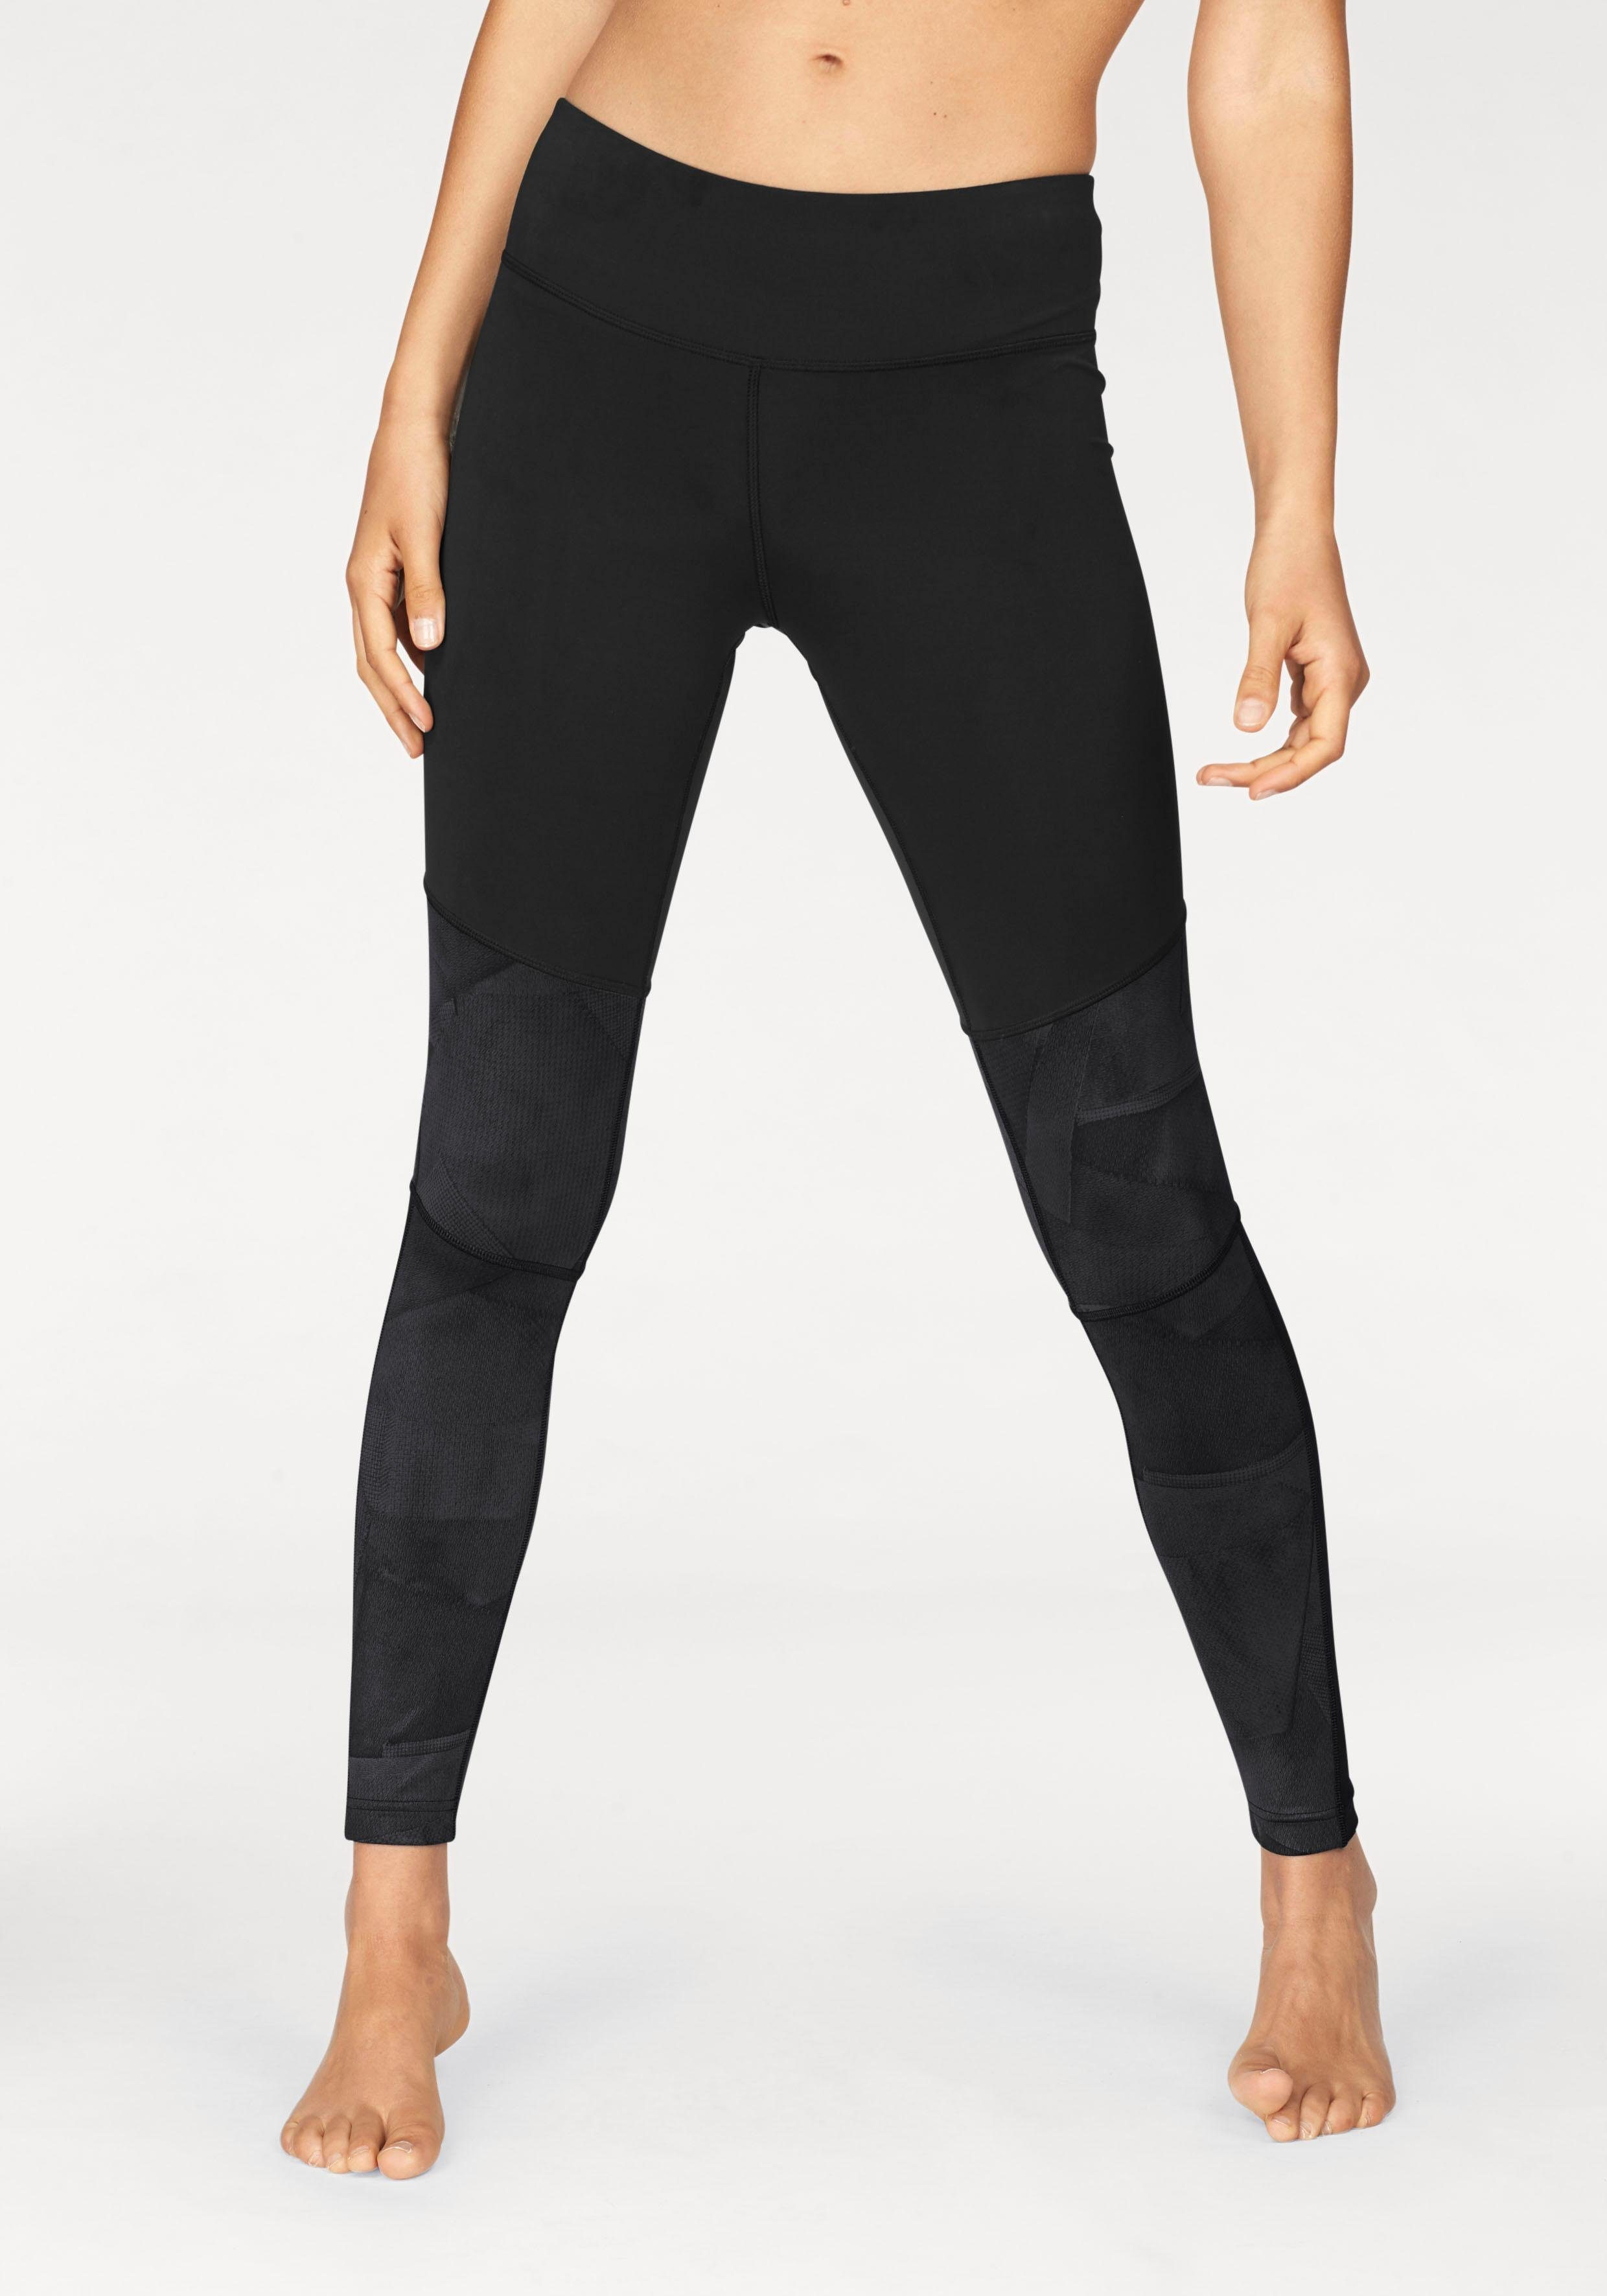 Otto »wor Tight« Reebok Funktionstights Colorblocked qgwC7xF